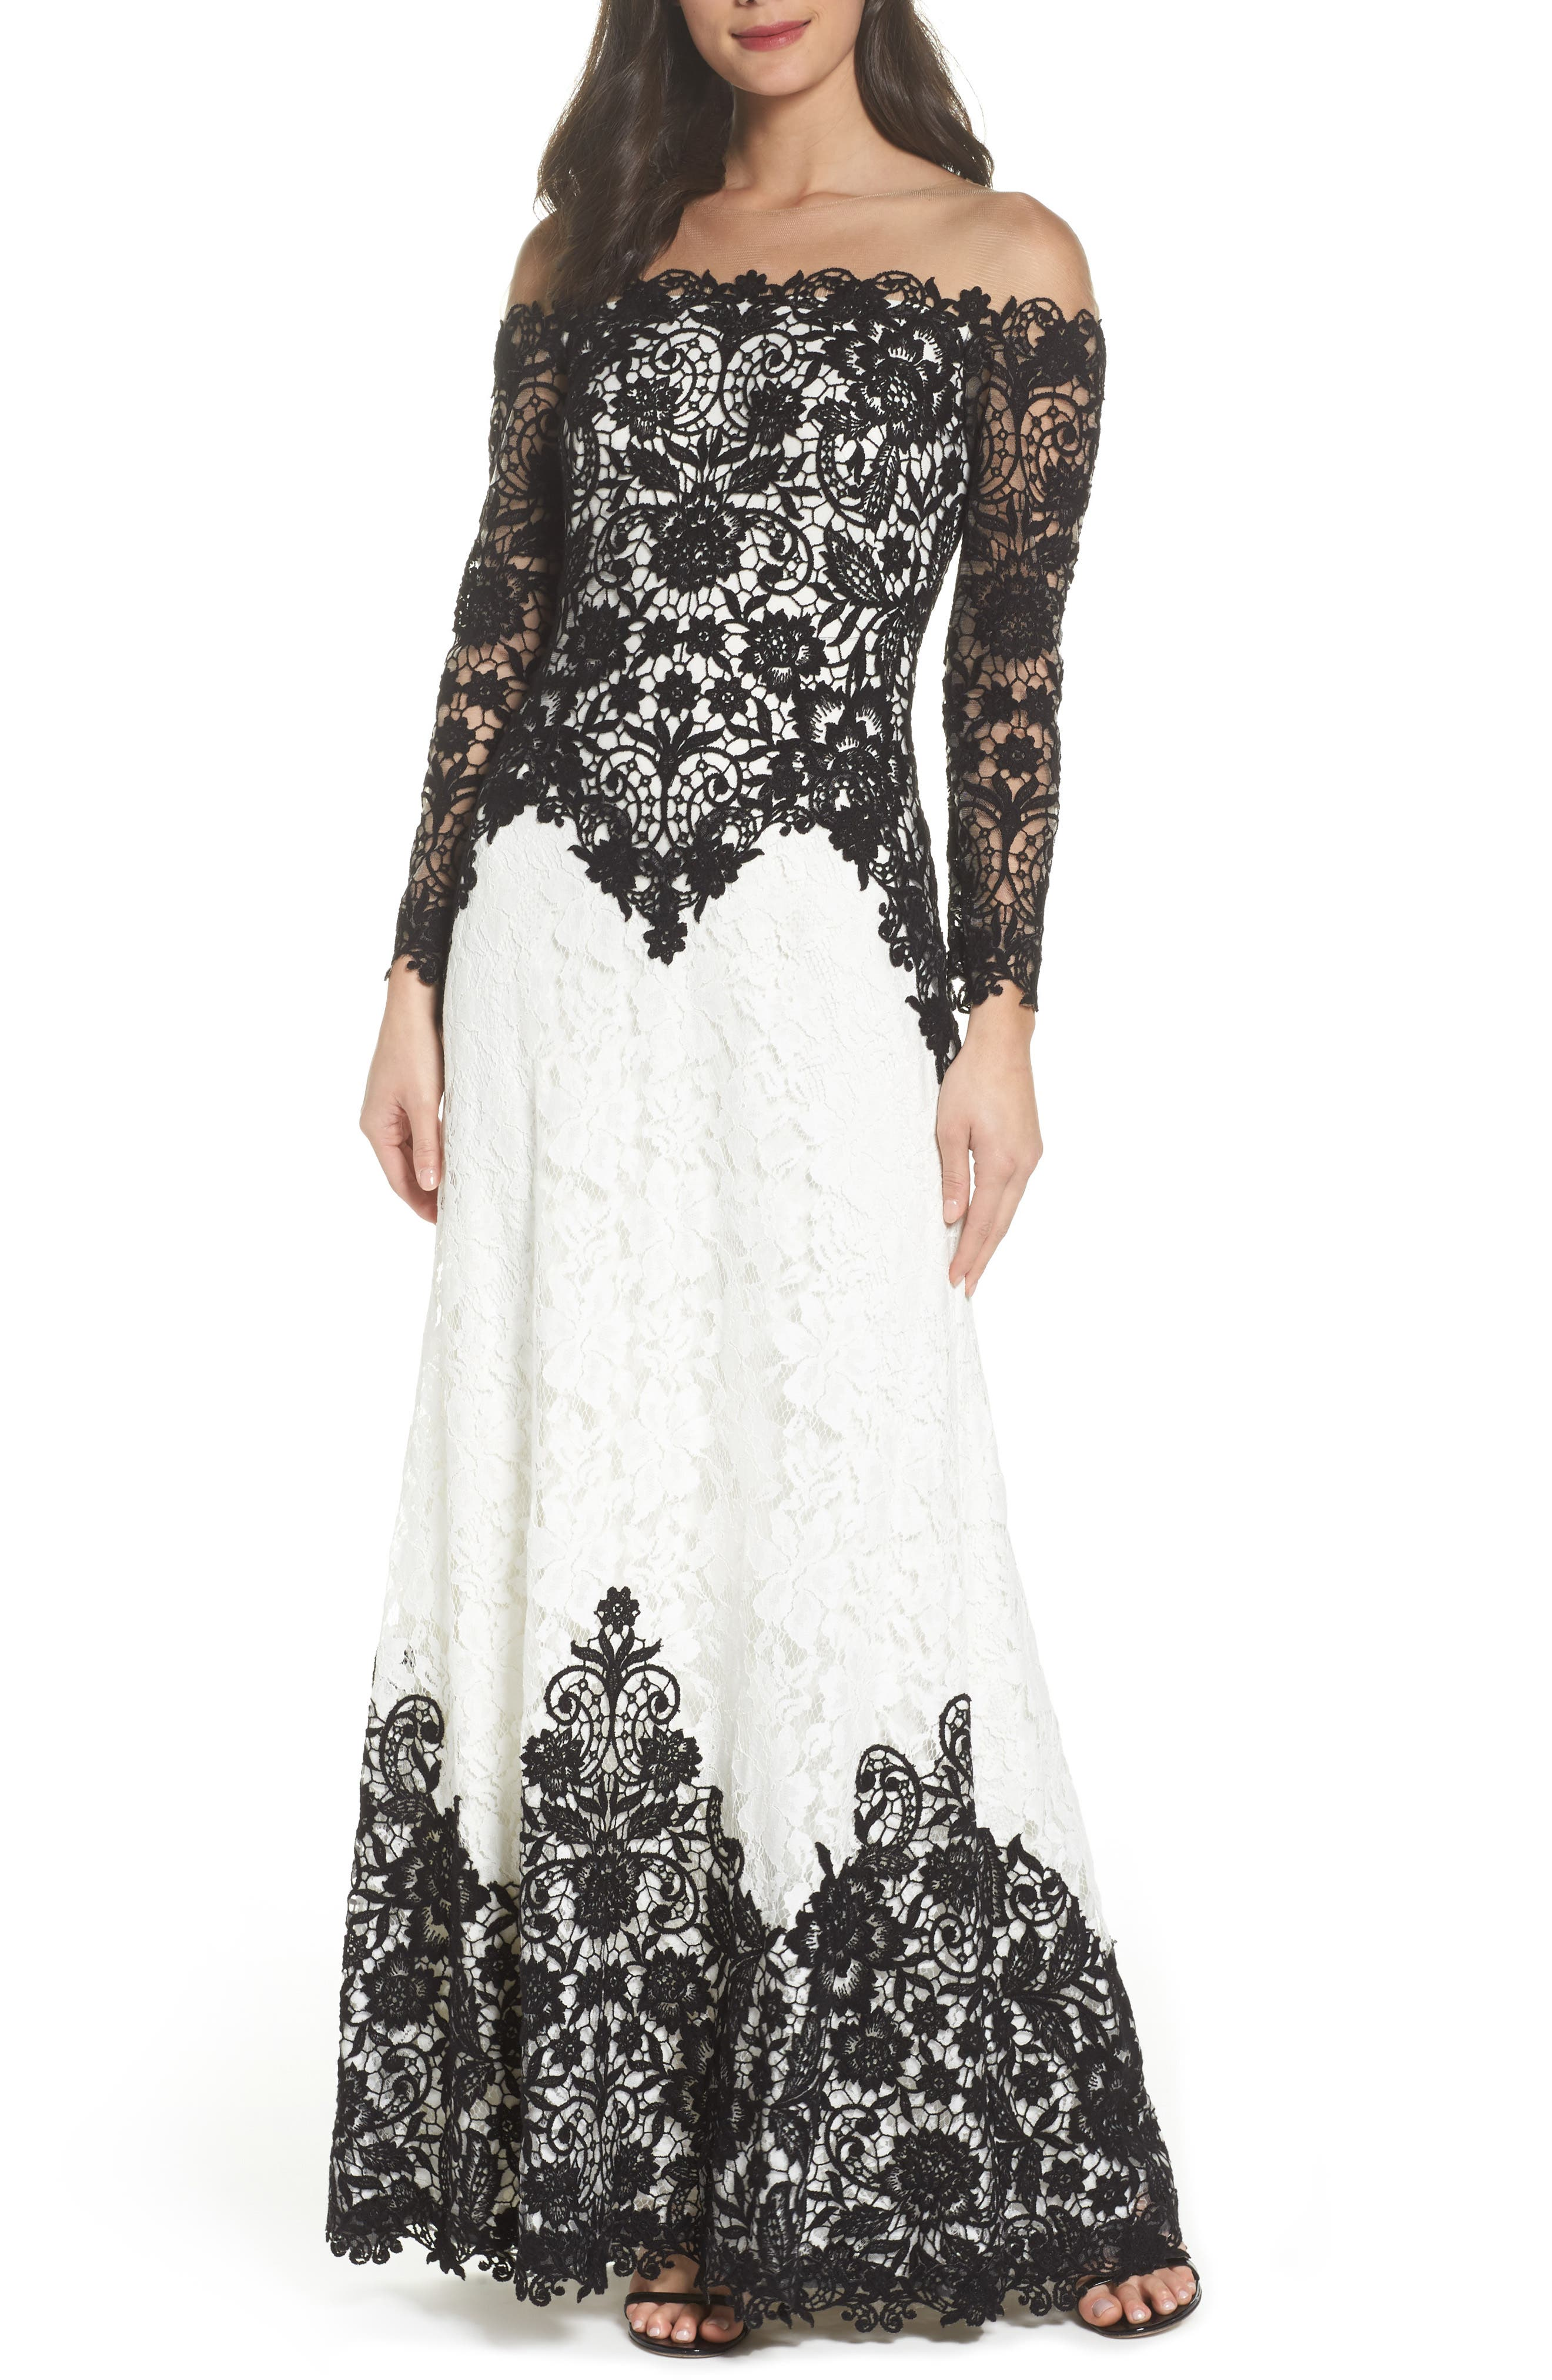 Illusion Neck Two-Tone Lace Gown,                             Main thumbnail 1, color,                             Black/ Ivory